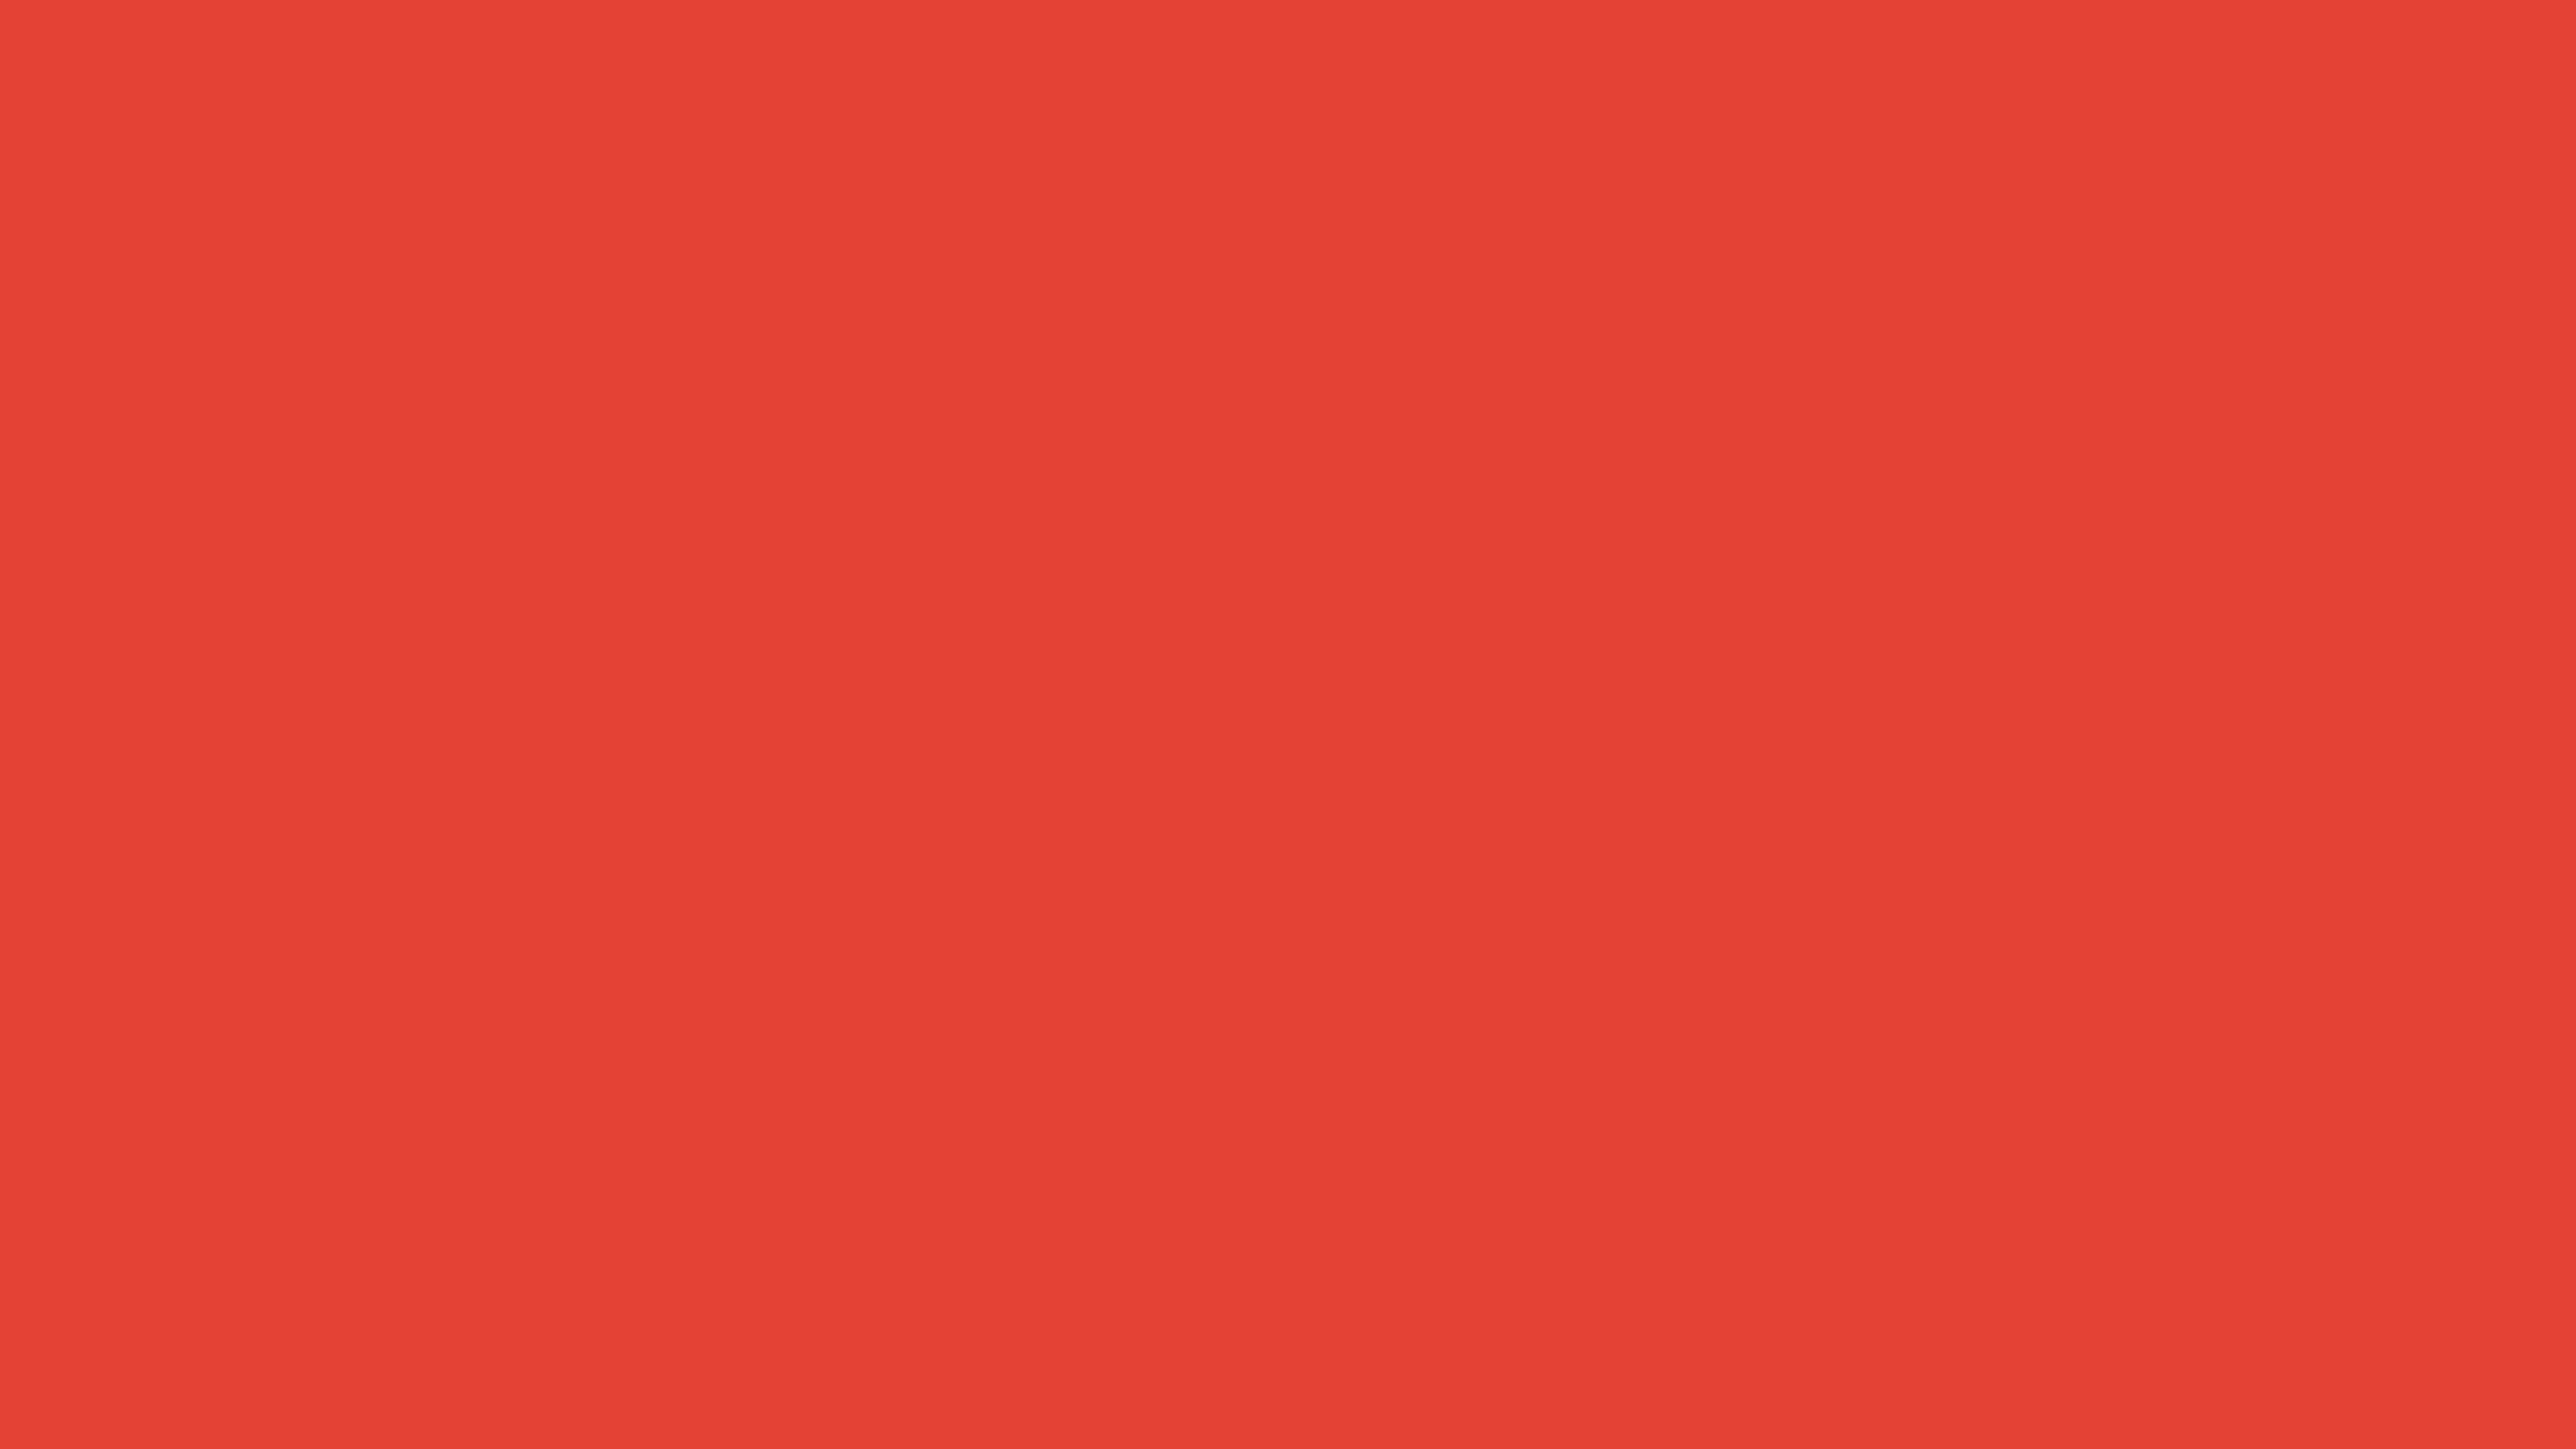 4096x2304 Cinnabar Solid Color Background